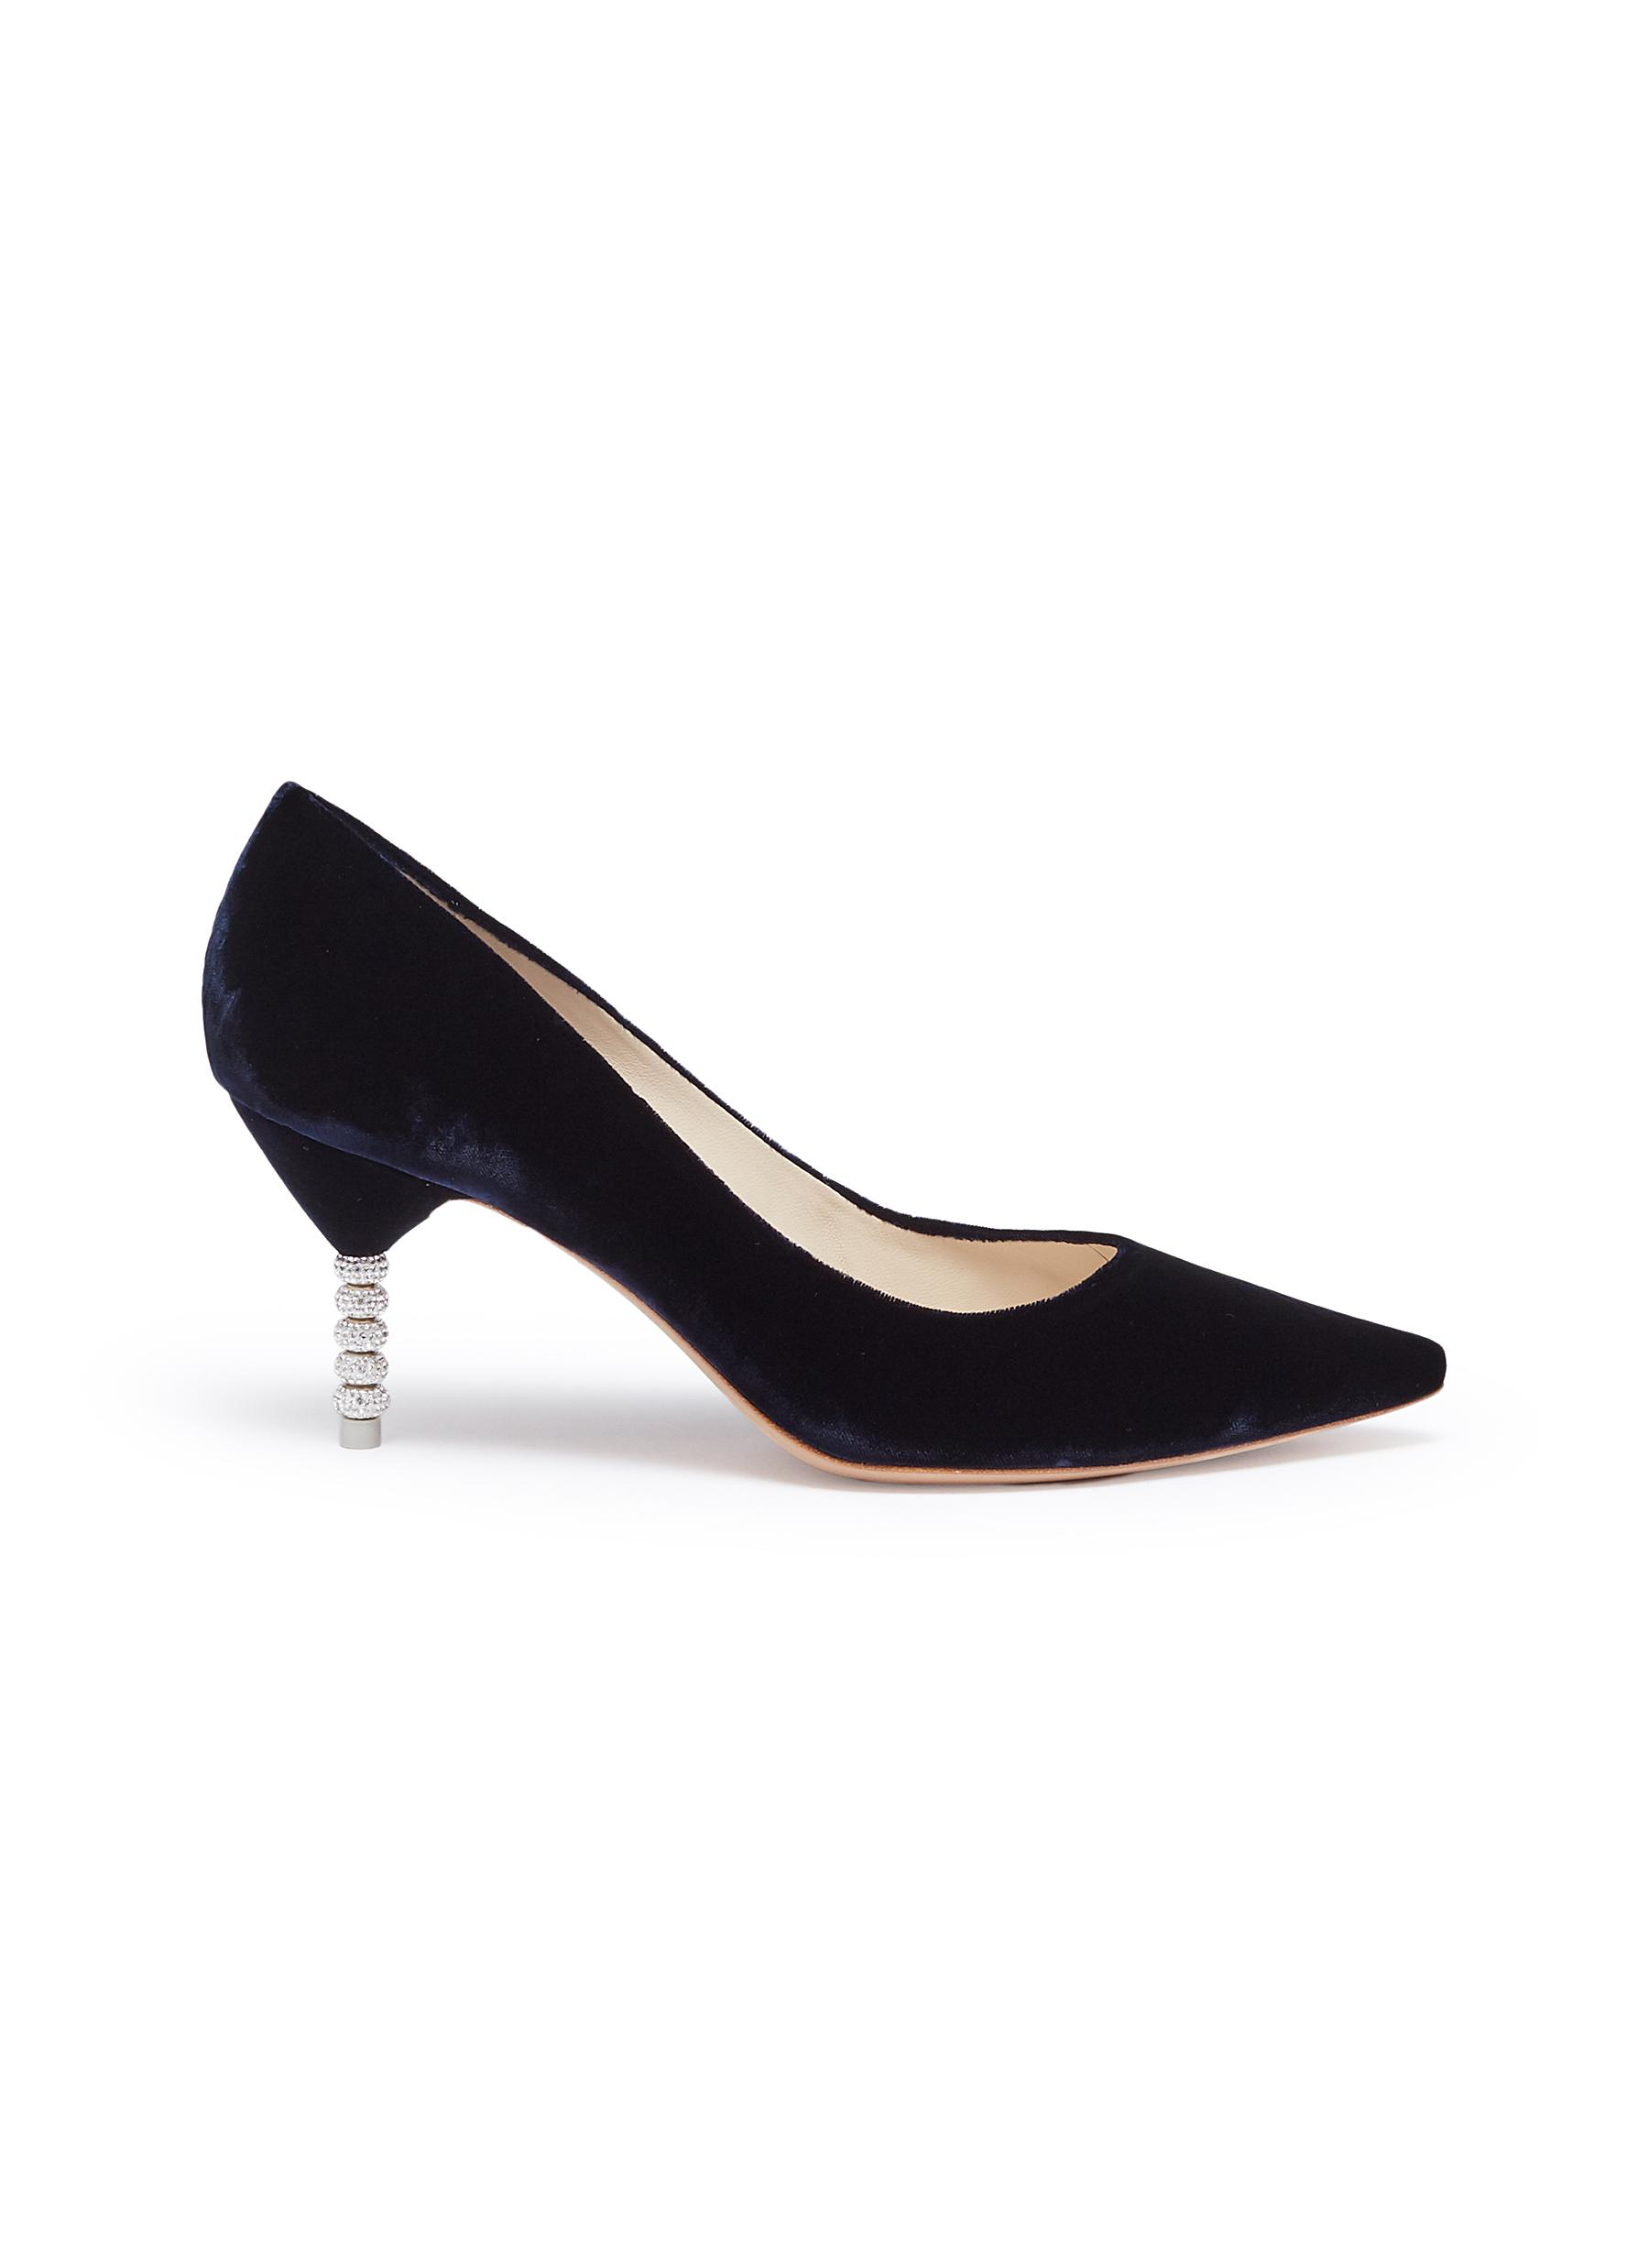 Coco crystal pavé bead heel velvet pumps by Sophia Webster